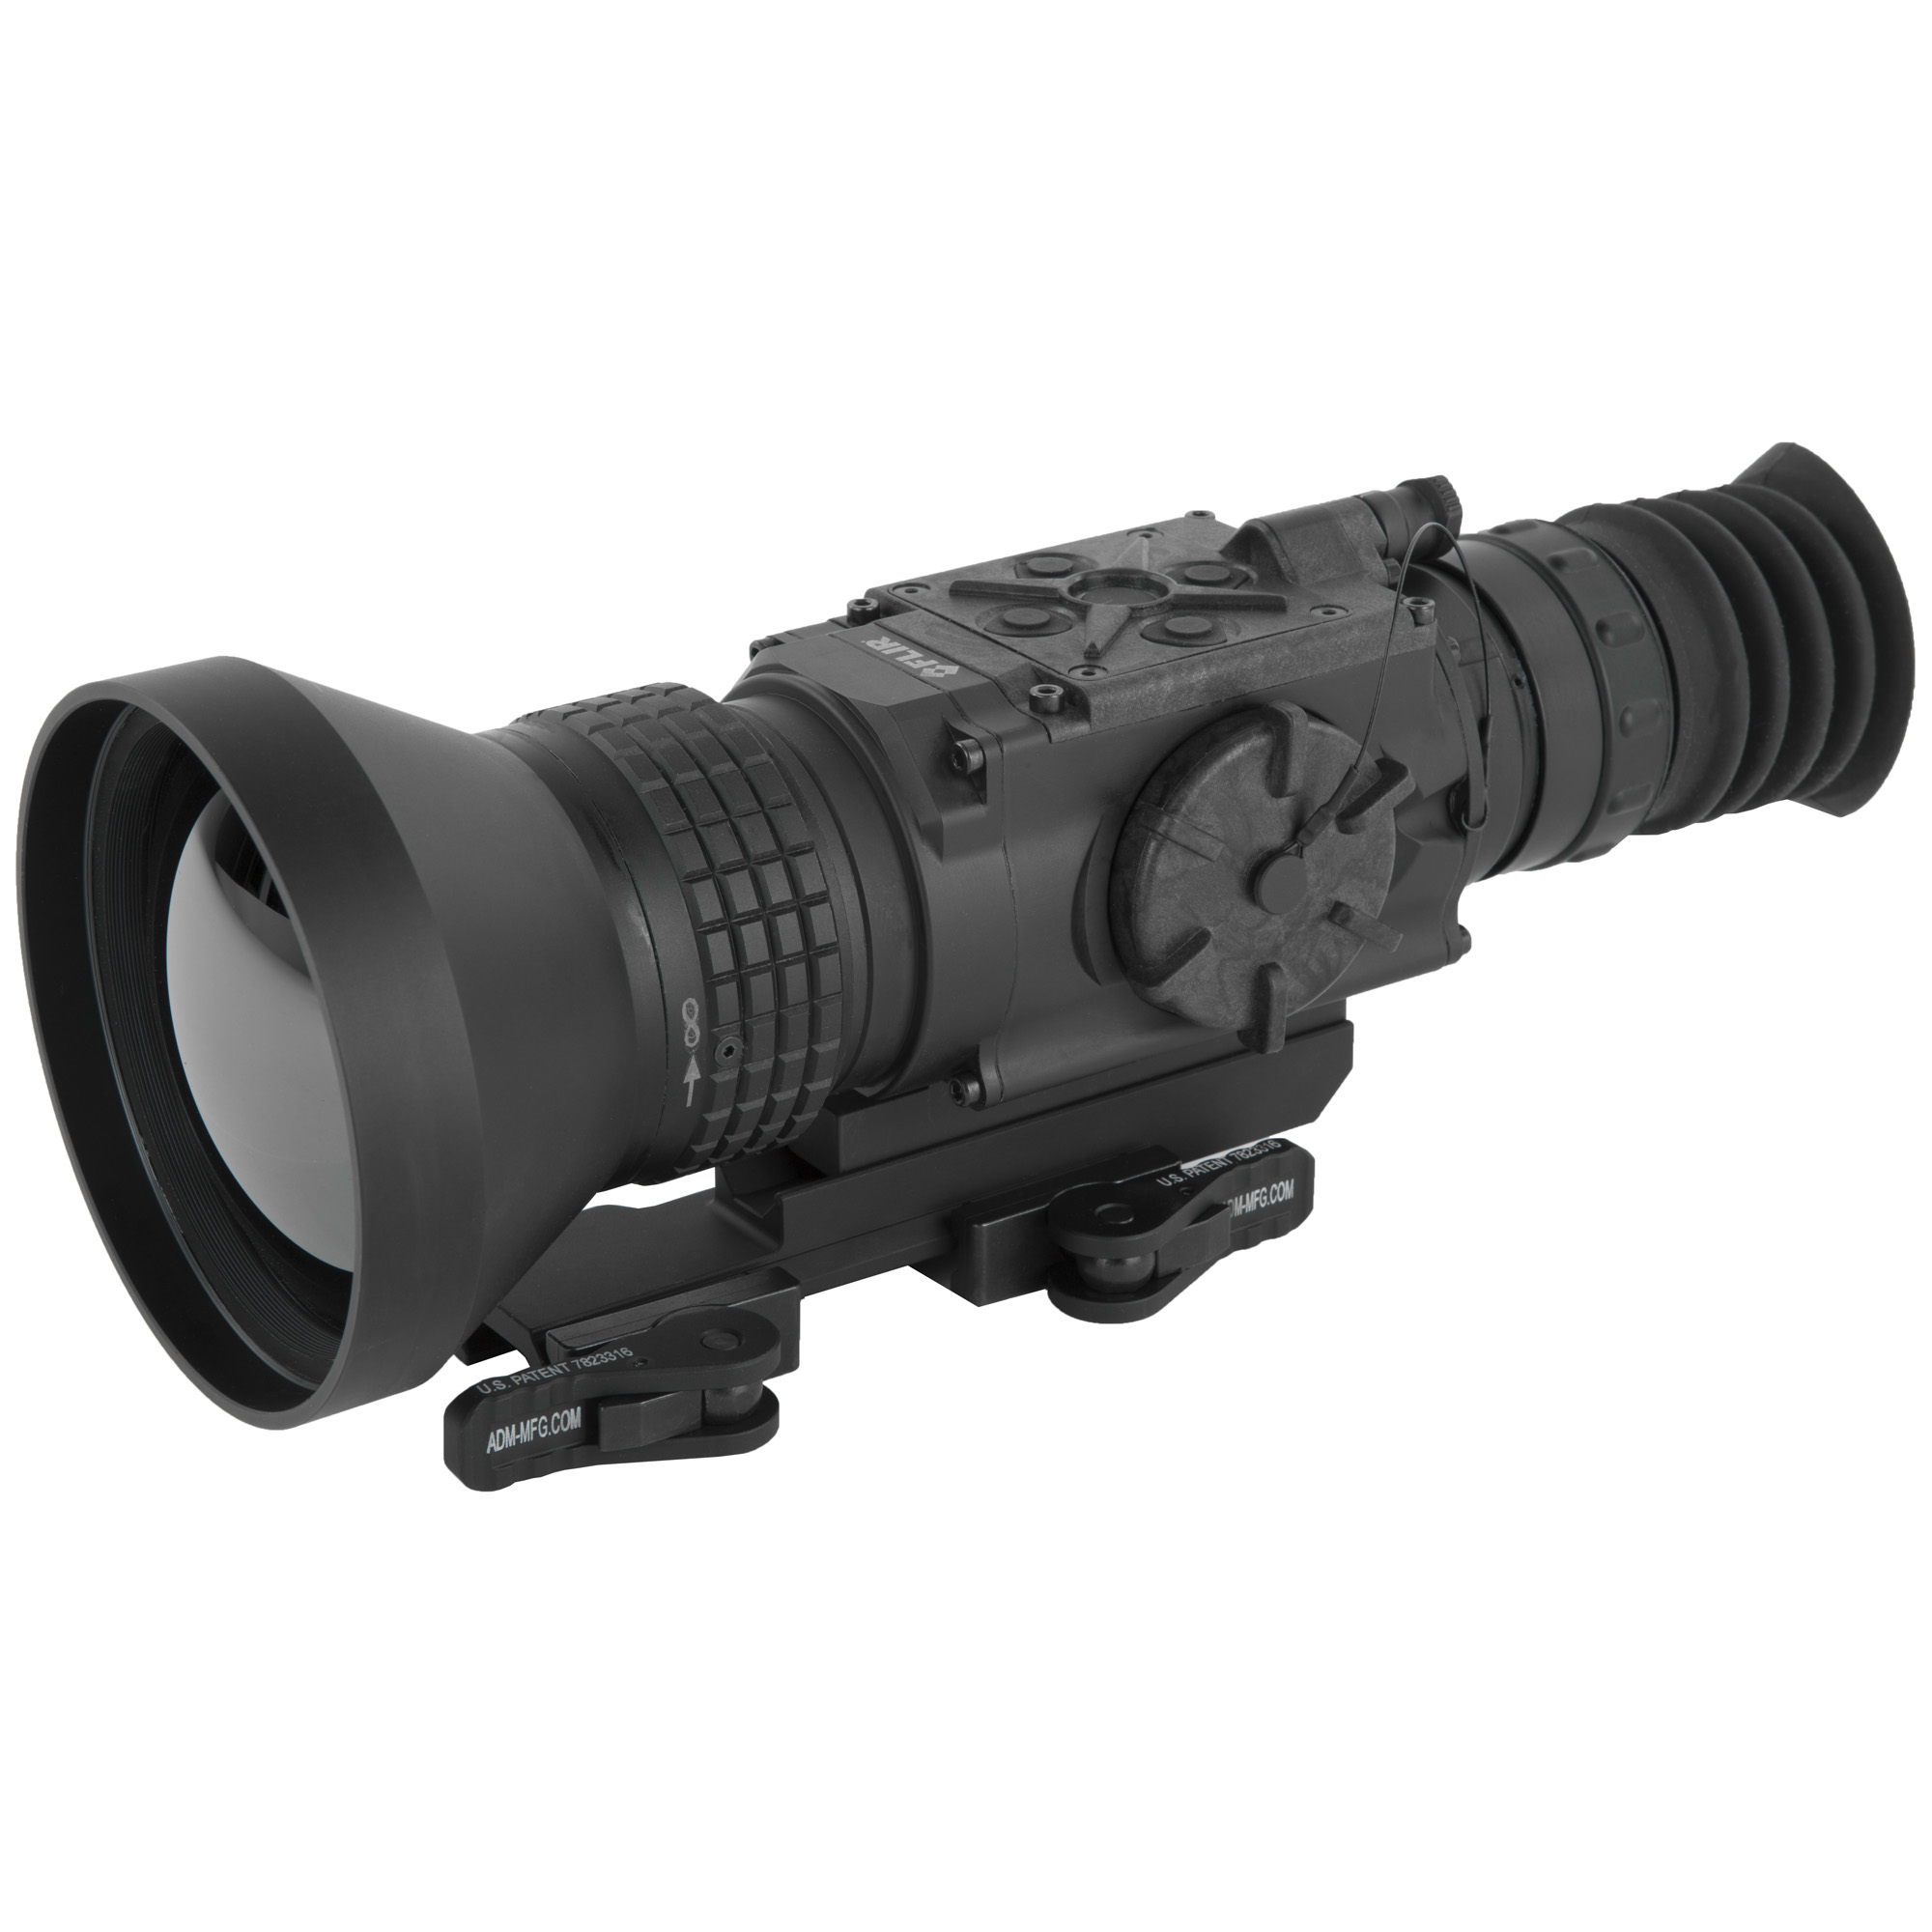 """Powered by the breakthrough FLIR Boson core"""" the ThermoSight Pro Series(R) PTS736 weapon sight sets the standard for thermal detection and classification. Featuring a 12 m pixel pitch sensor and 75mm lens"""" the PTS736 produces brilliant"""" clean thermal imaging with a 3 degree x 2.5 degree field of view for long-range targets. The entire ThermoSight Pro Series offers an uncompressed video signal"""" a high definition display"""" and shot-activated video recording."""